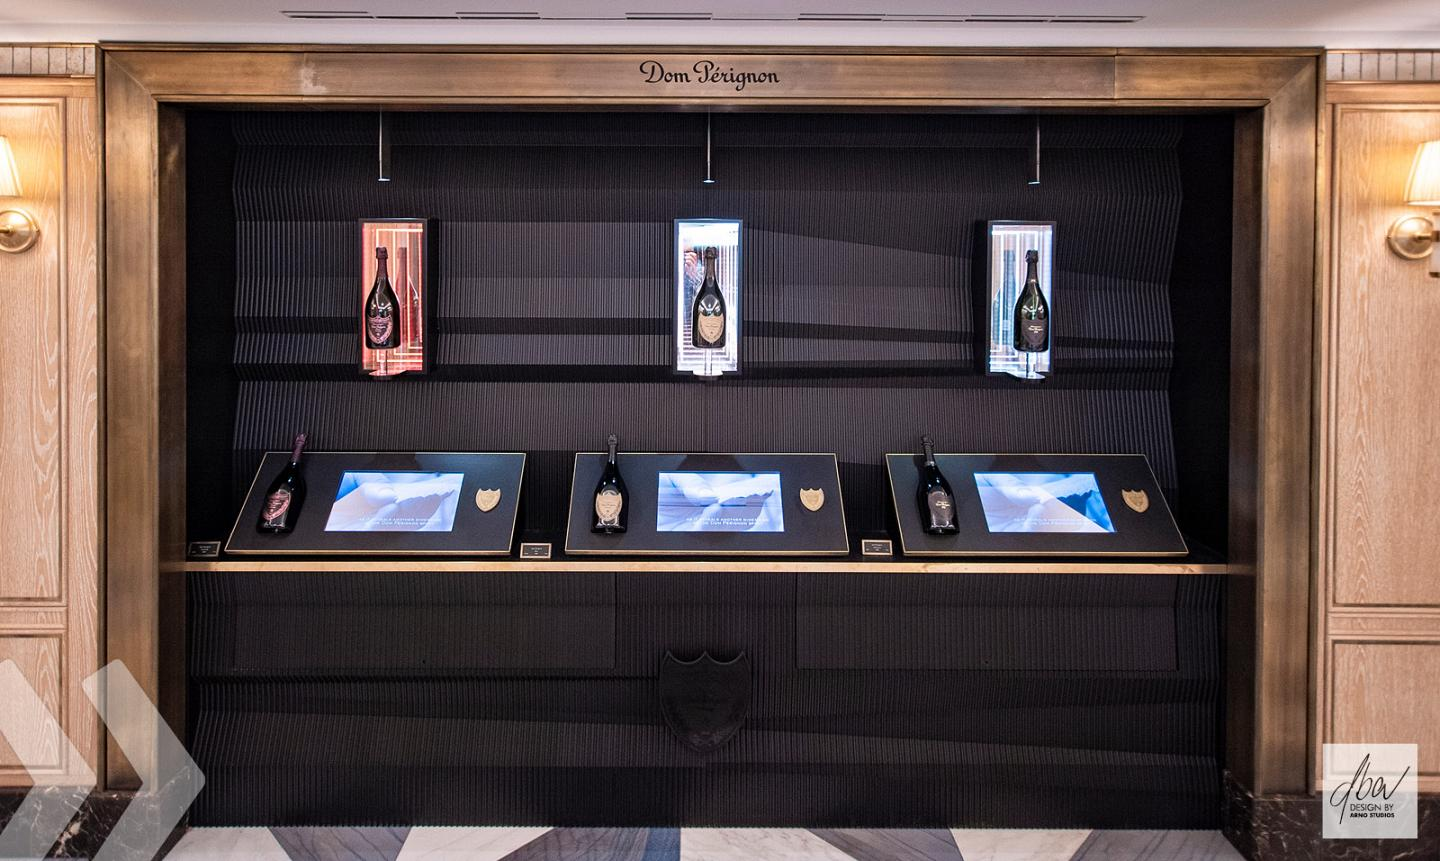 Dom Perignon Display 02